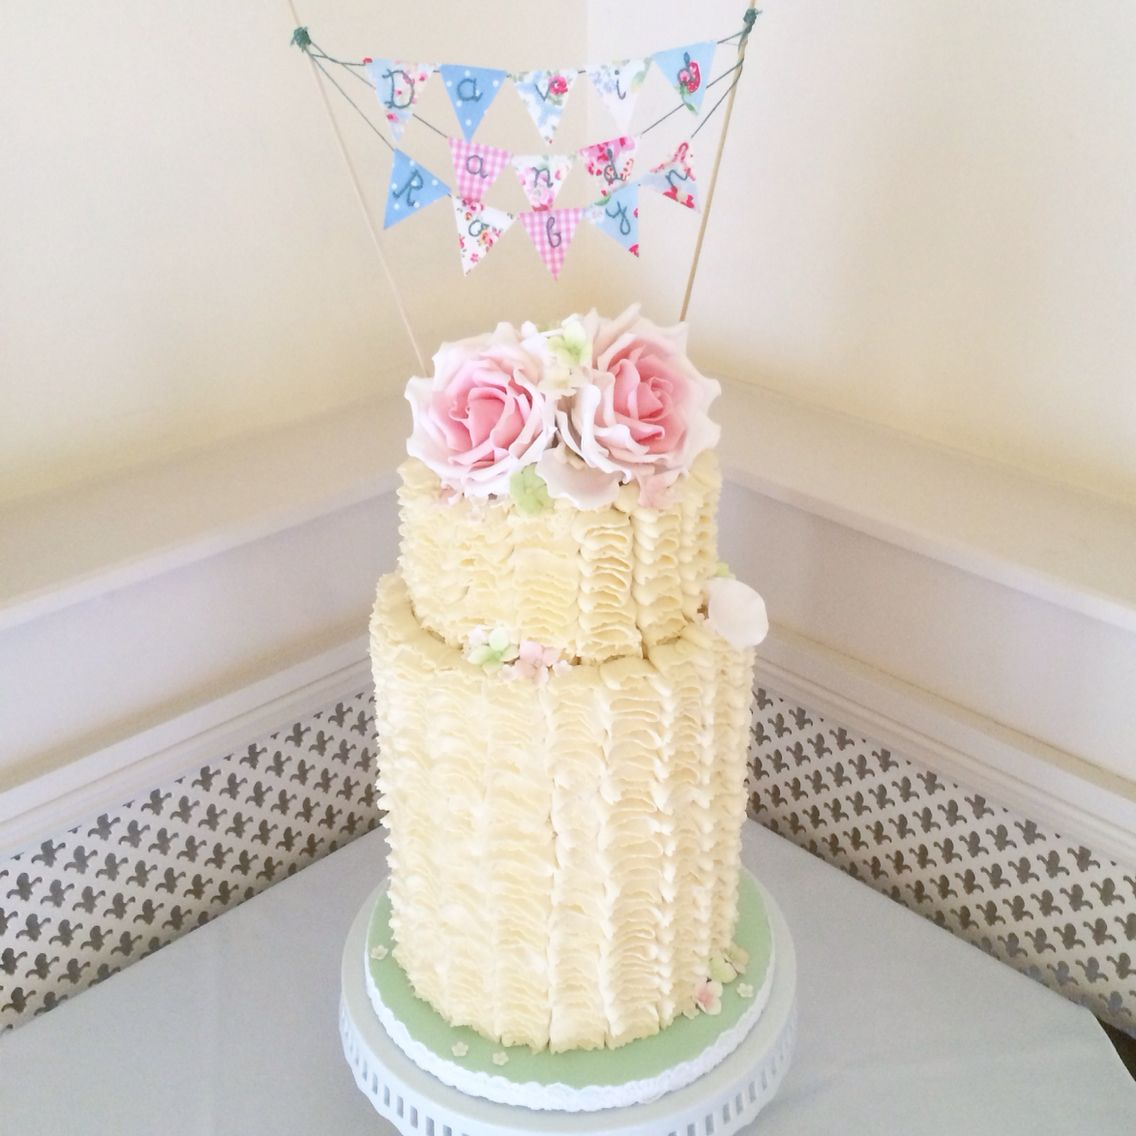 Double height two tier buttercream ruffle wedding cake, with ...